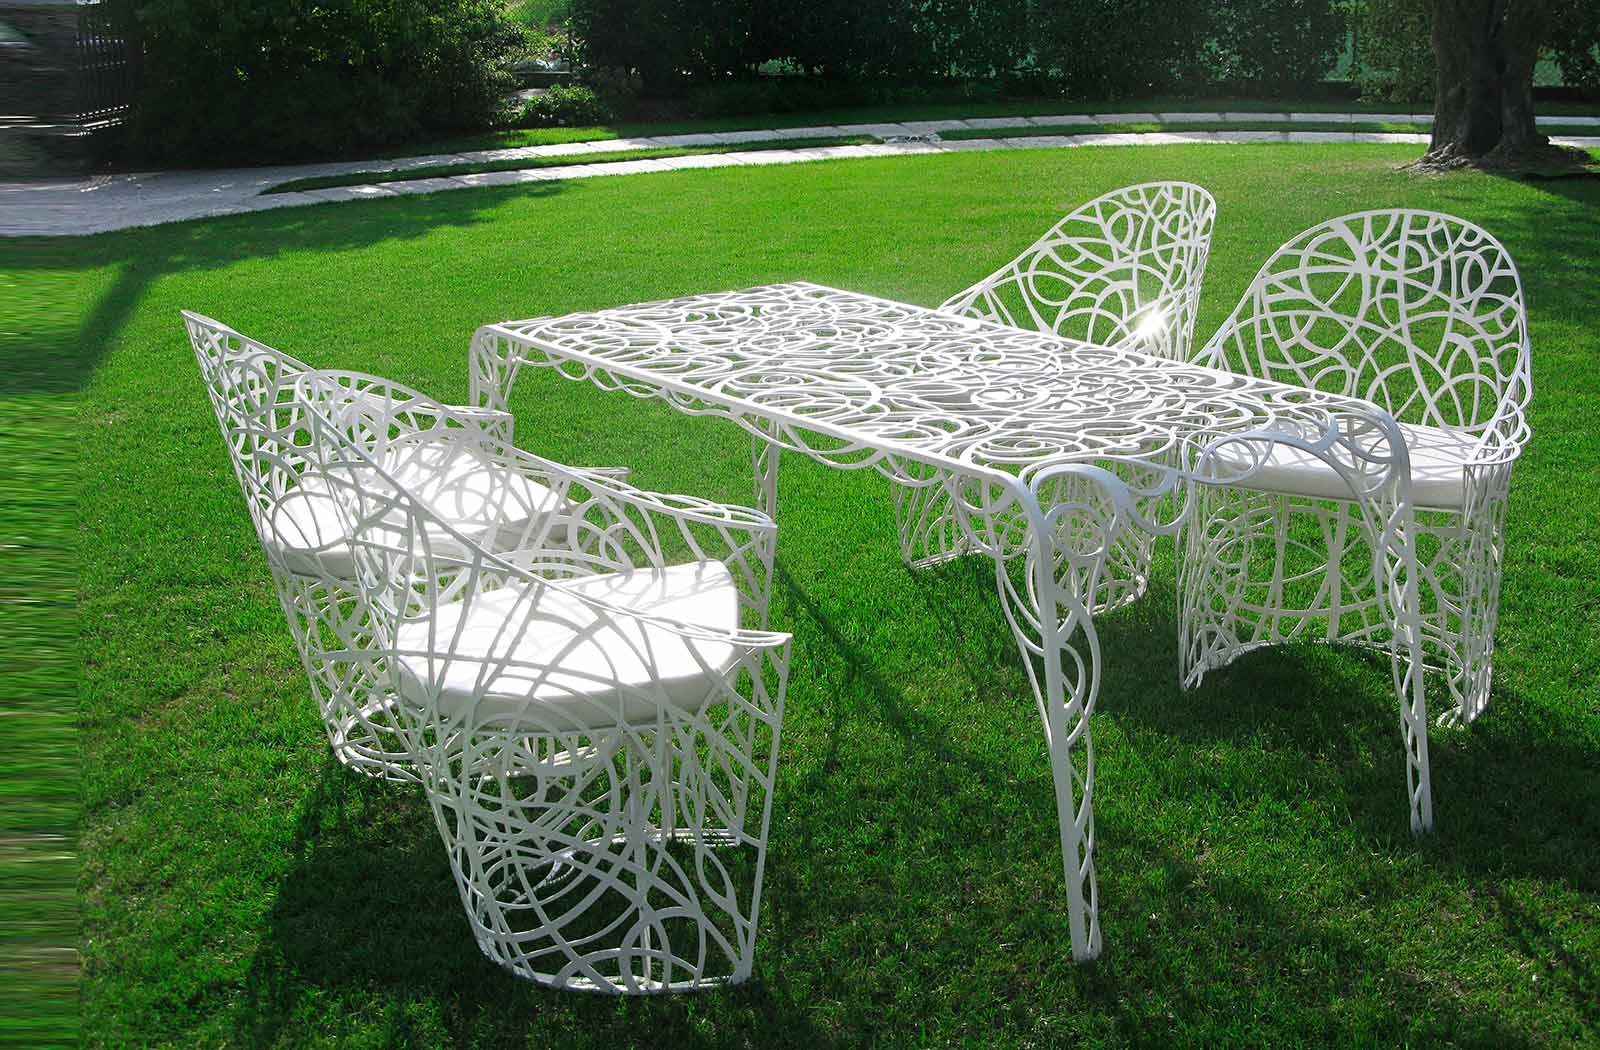 Lovely table and chairs on the grass